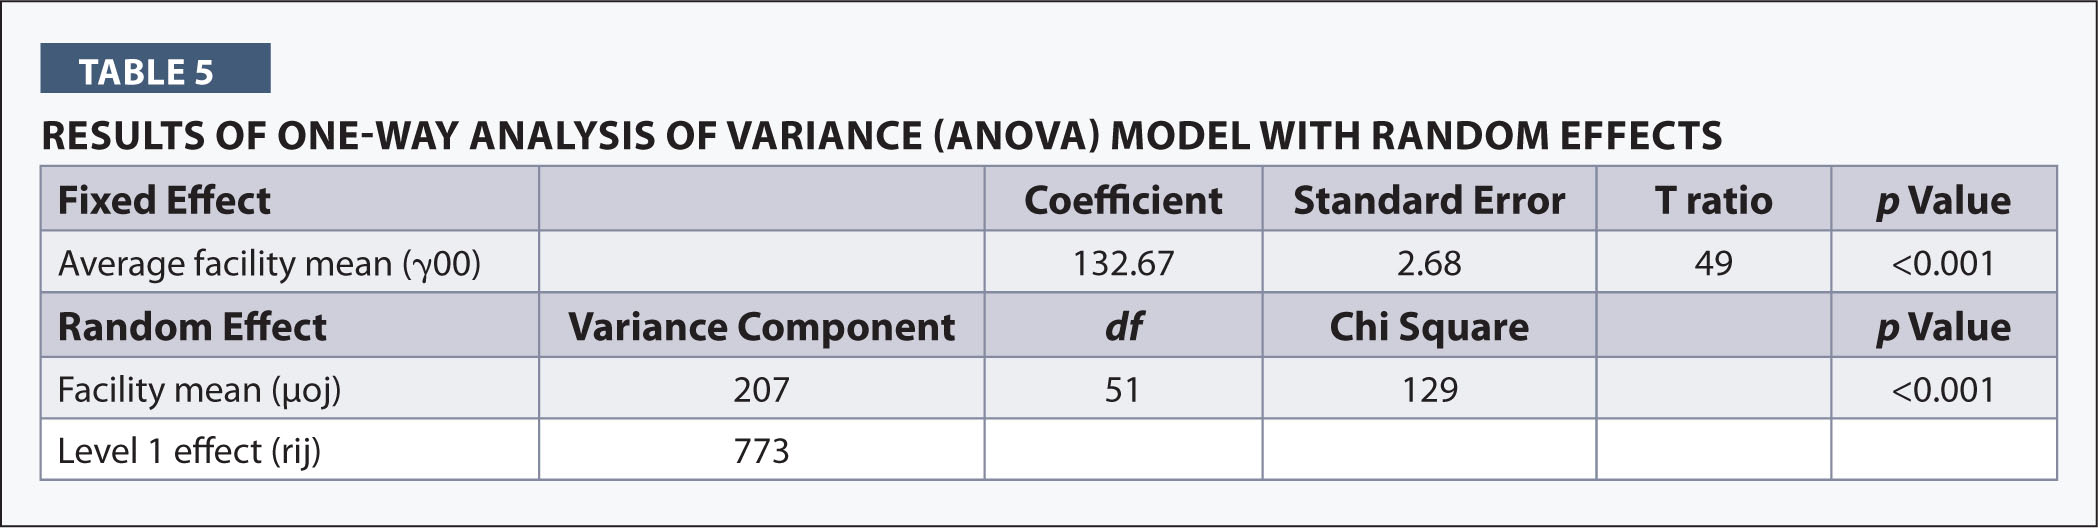 Results of One-Way Analysis of Variance (ANOVA) Model with Random Effects